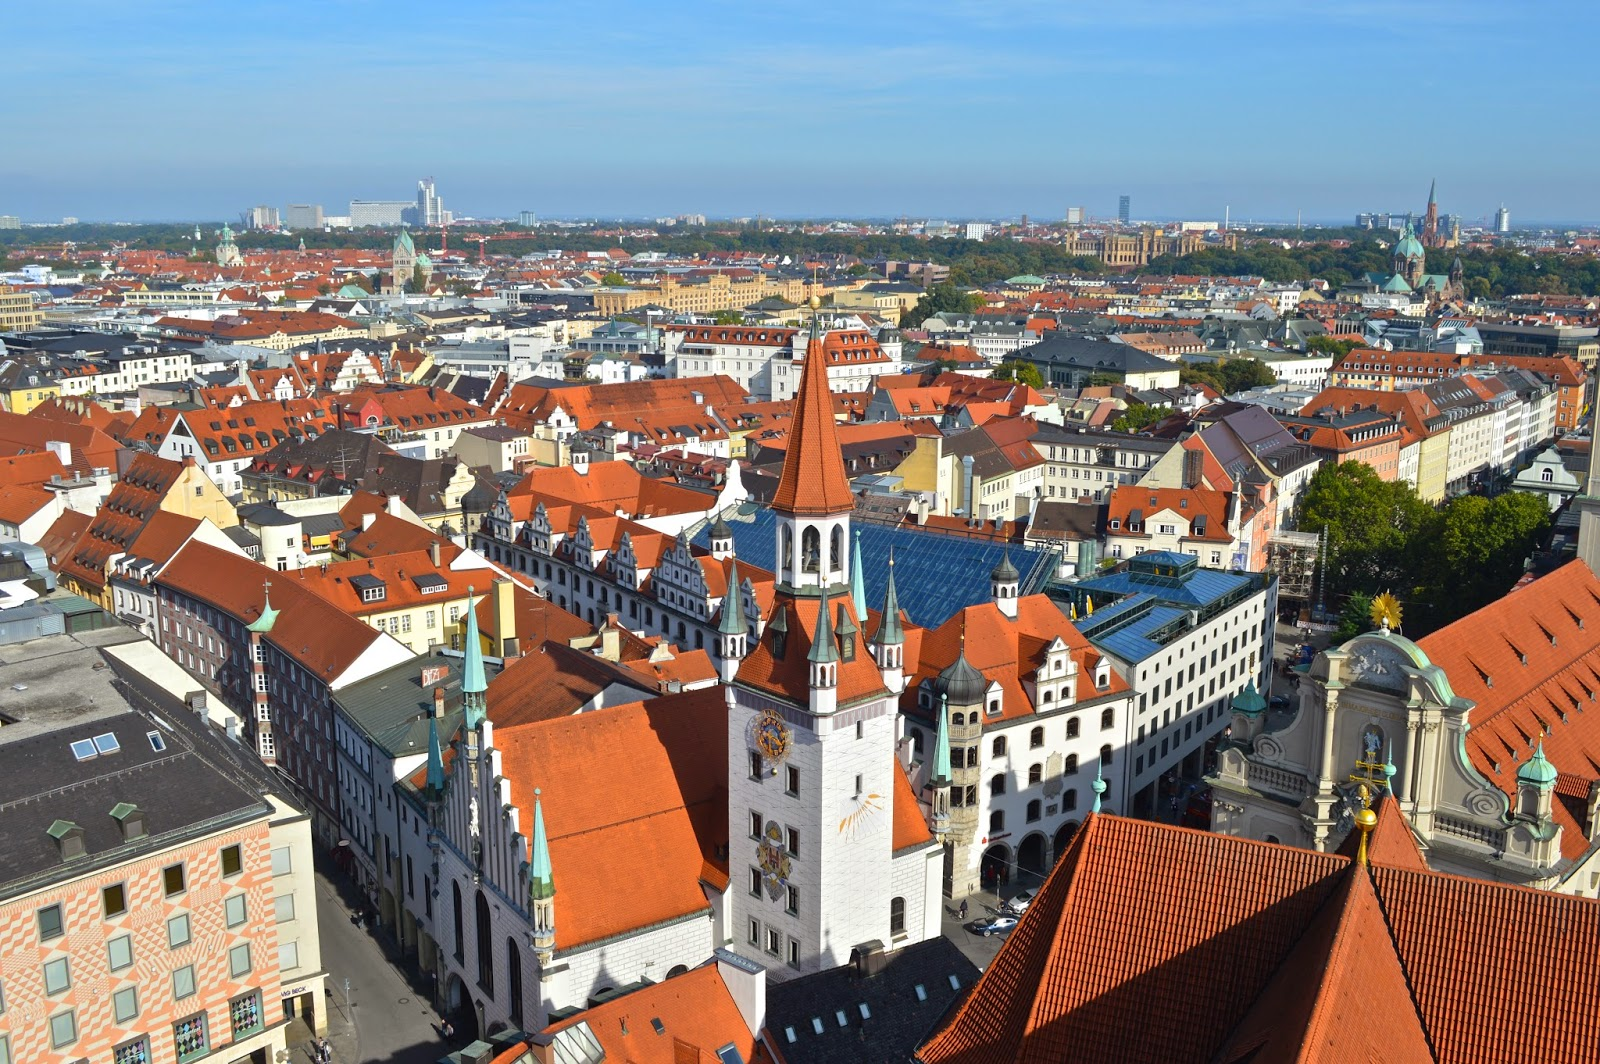 View from the top of Kirche St. Peter Tower